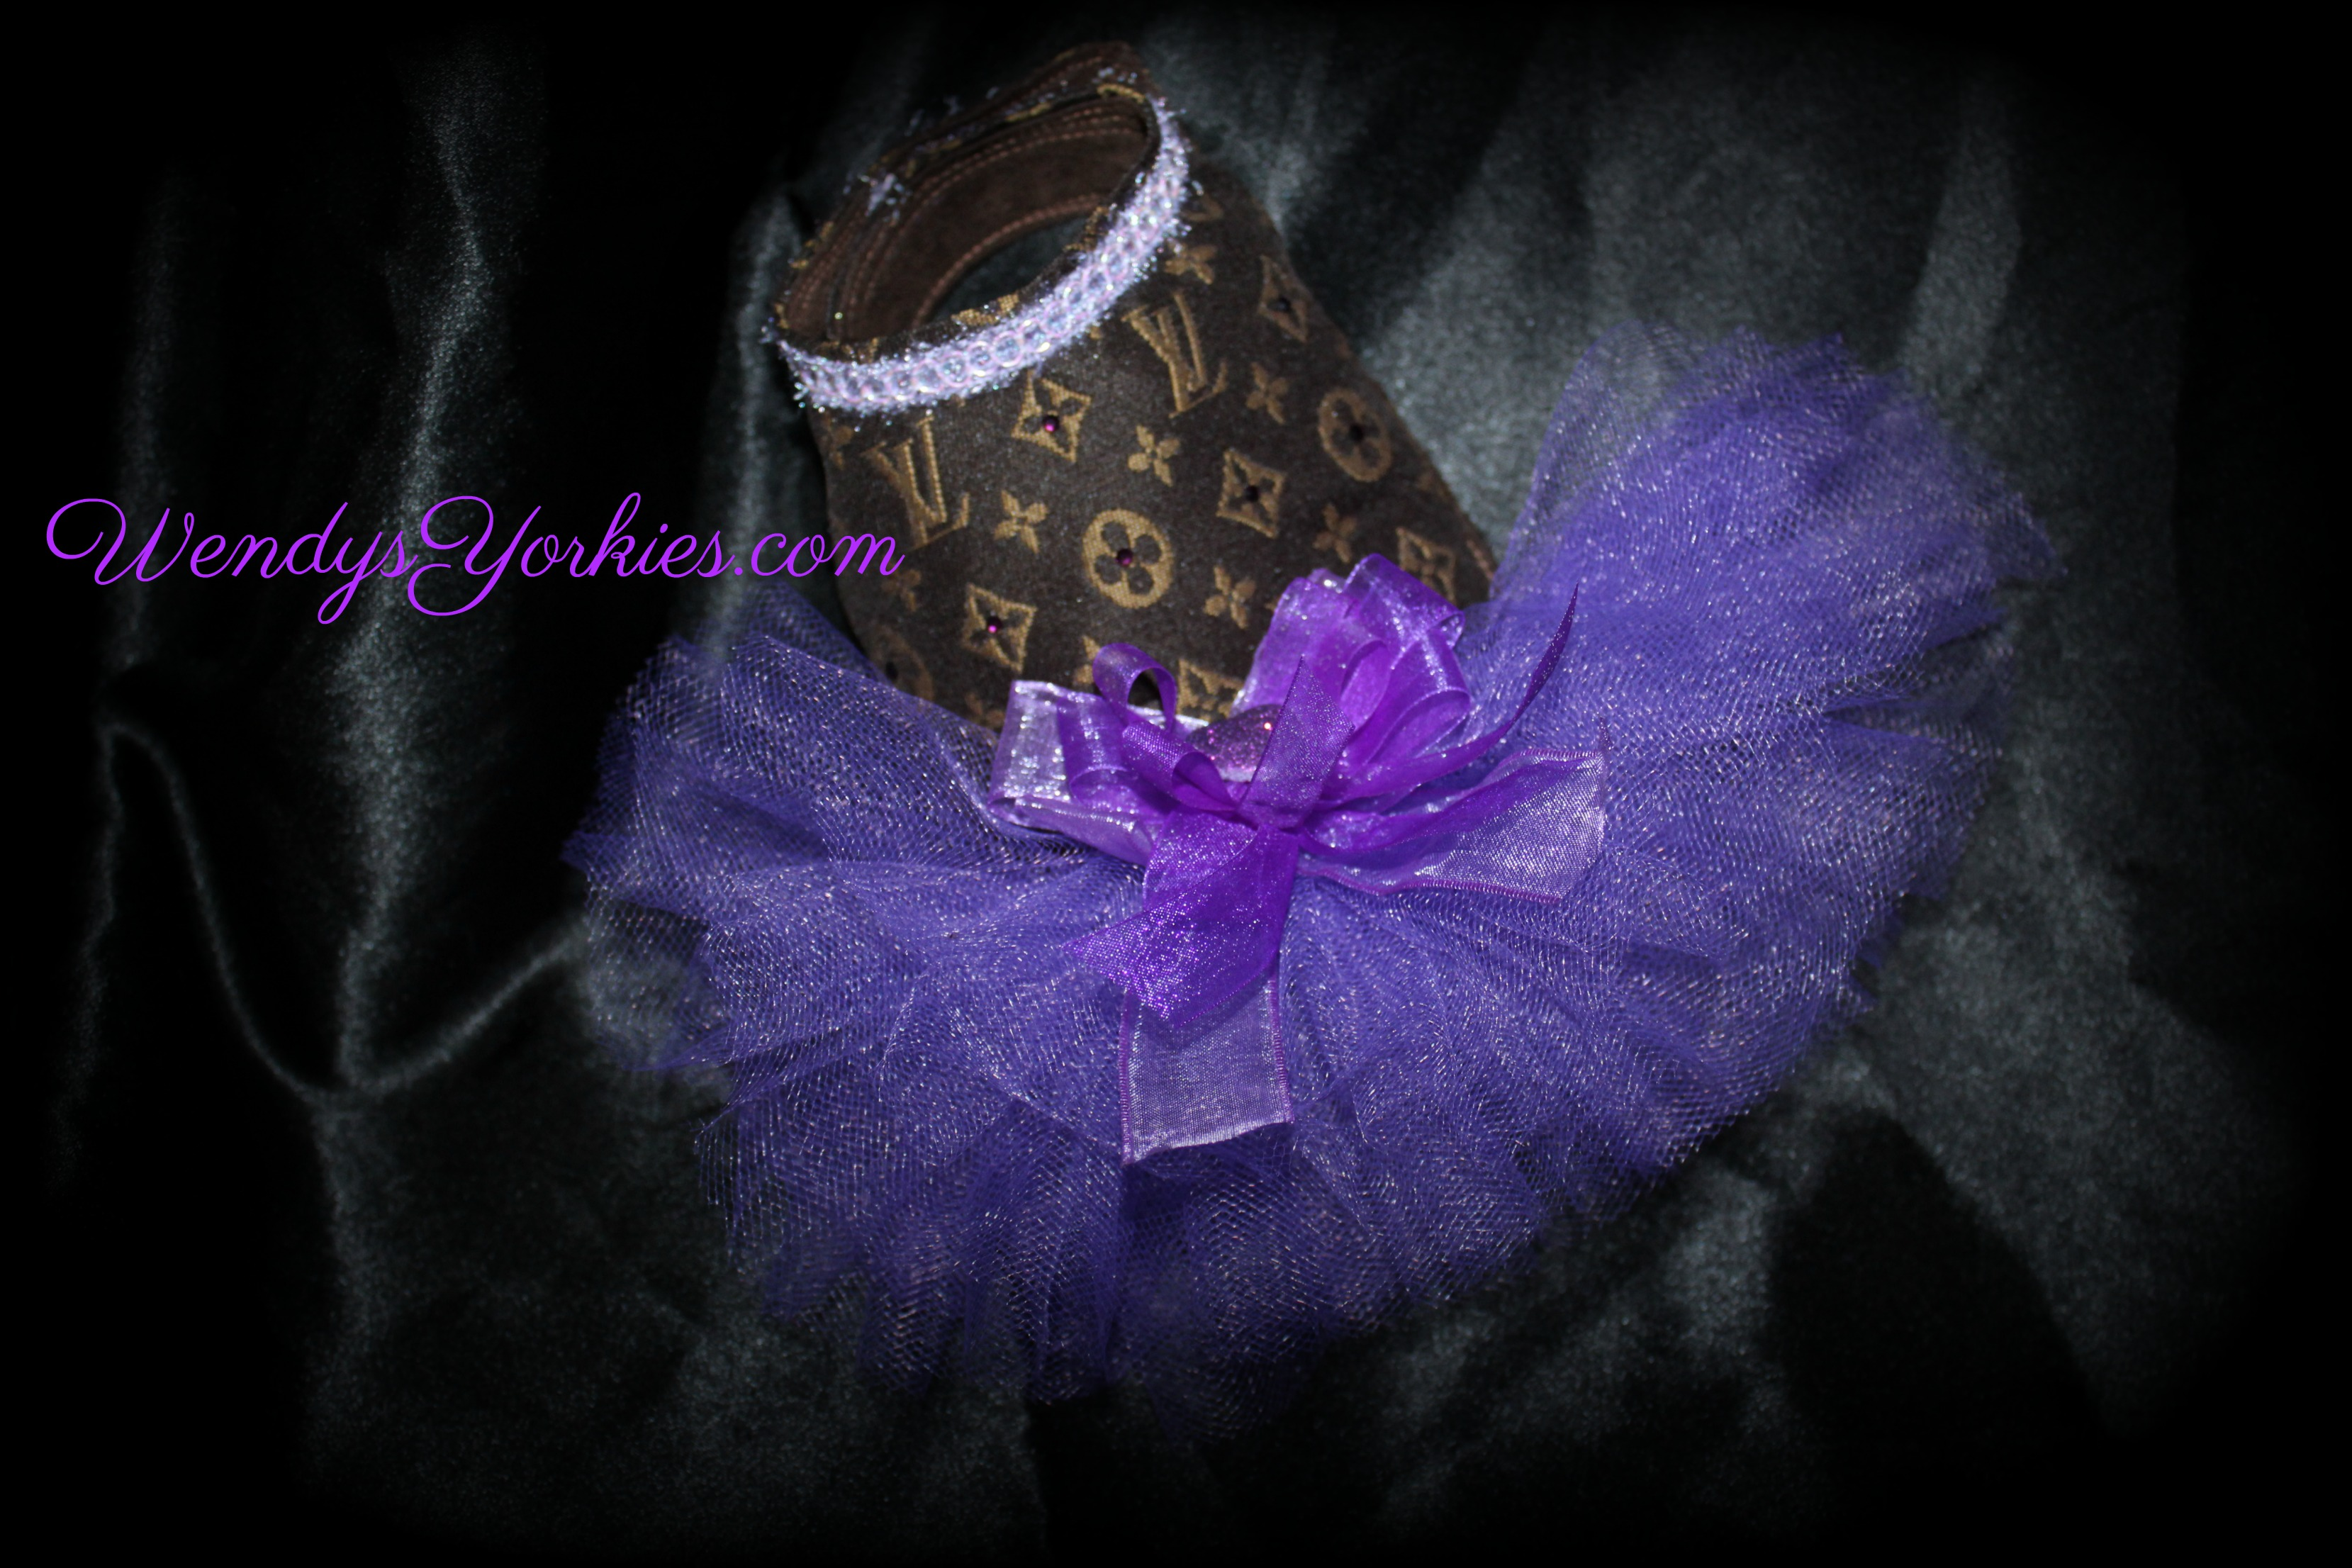 Purple Dog tutu Dress, Designer inspired LV dog dress, WendysYorkies.com